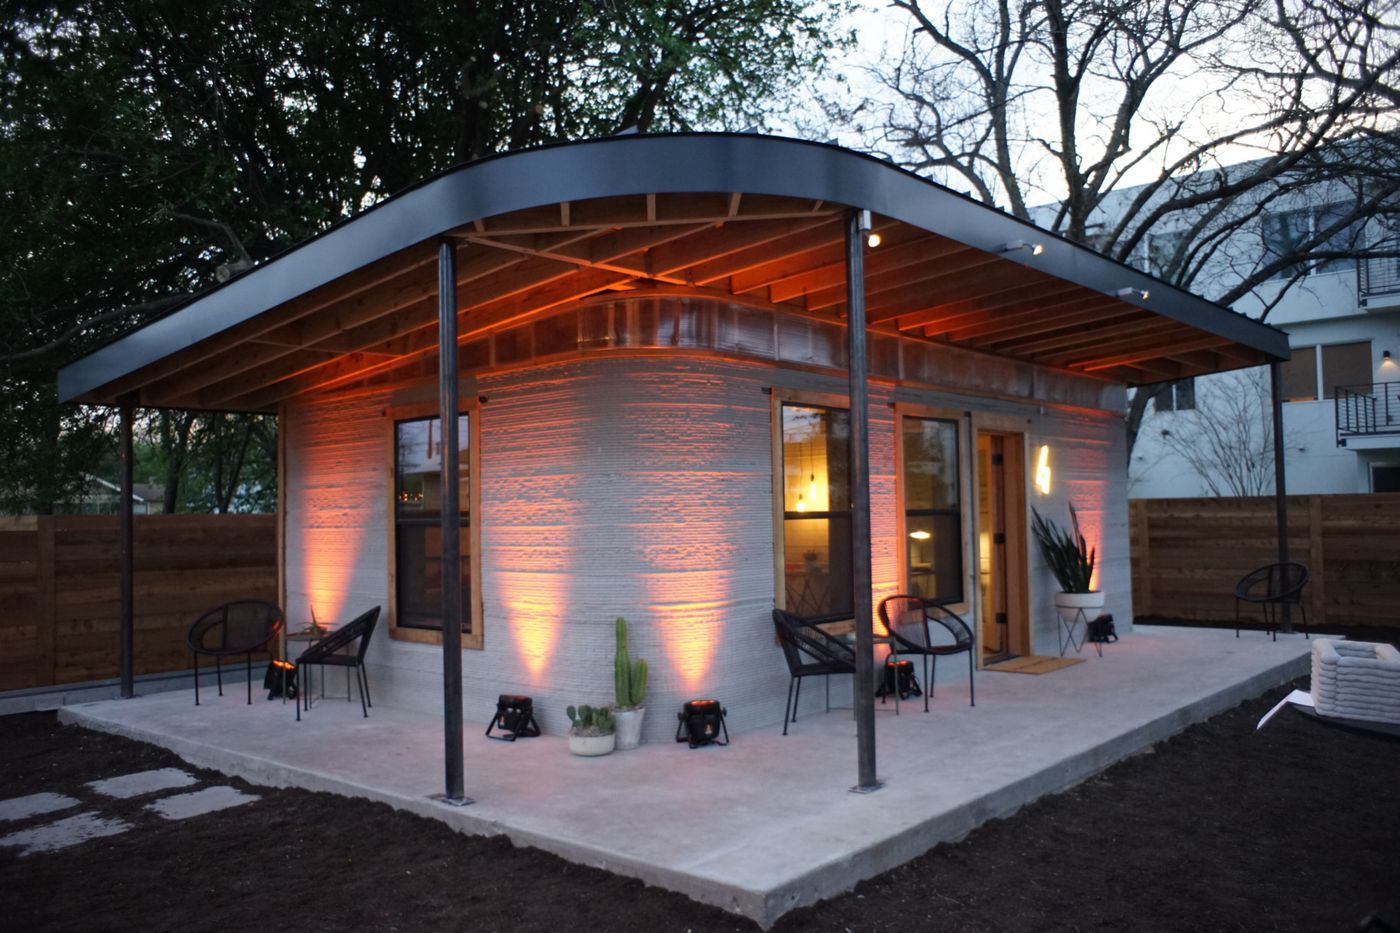 This Cheap 3d Printed Home Is A Start For The 1 Billion Who Lack Shelter 3d Printed House House Cost Concrete House